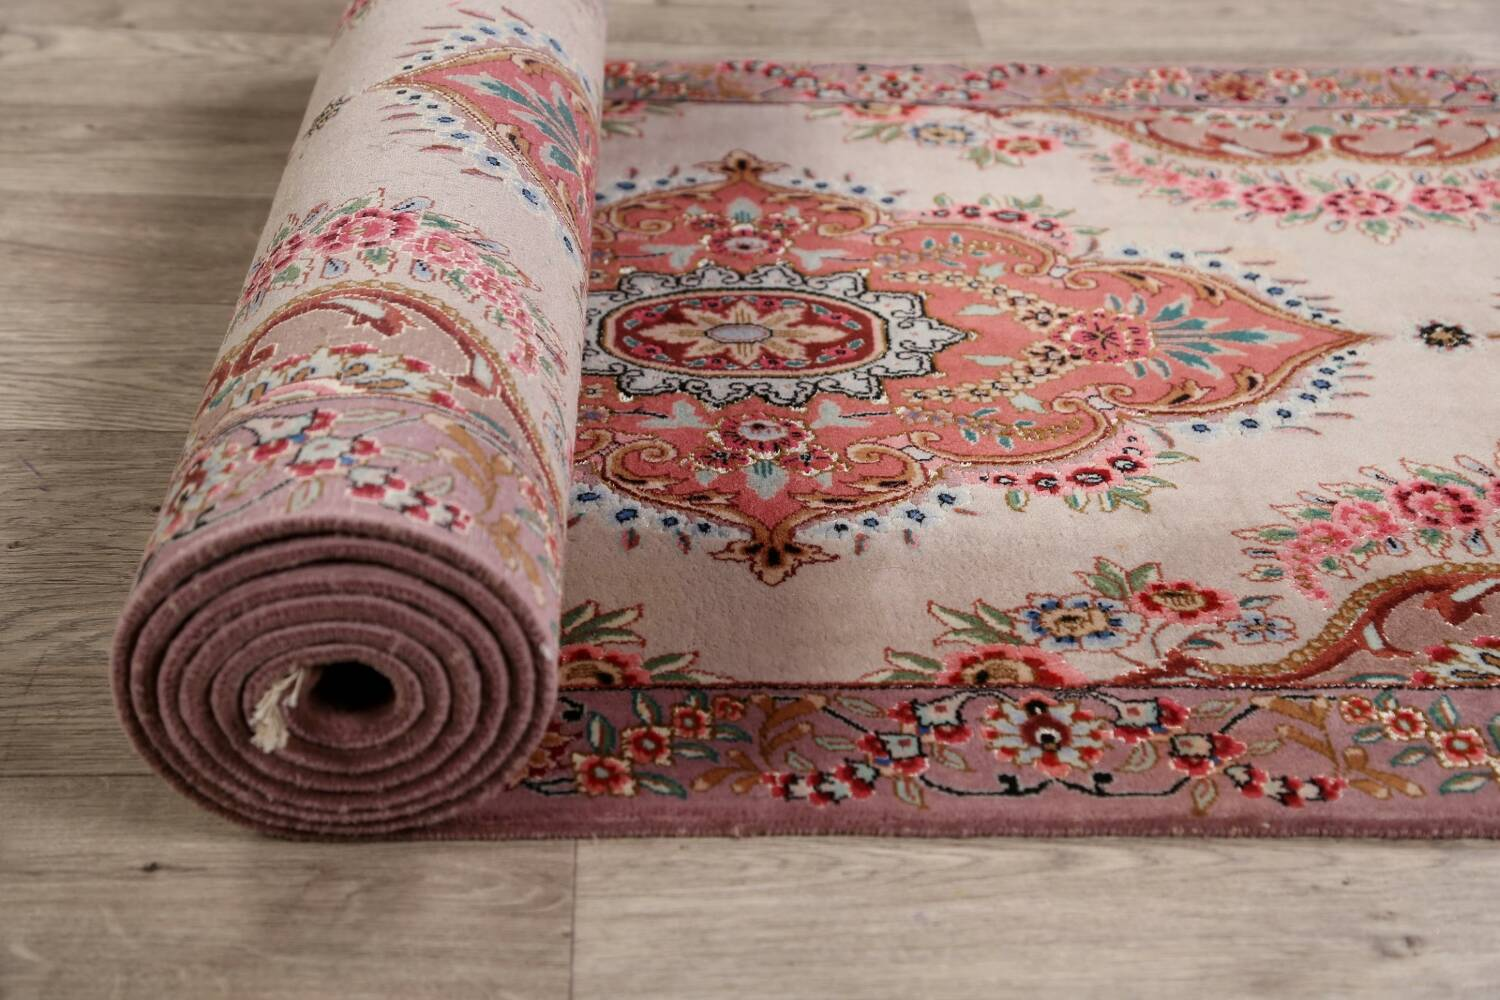 All-Over Floral Tabriz Persian Runner Rug 3x12 image 16